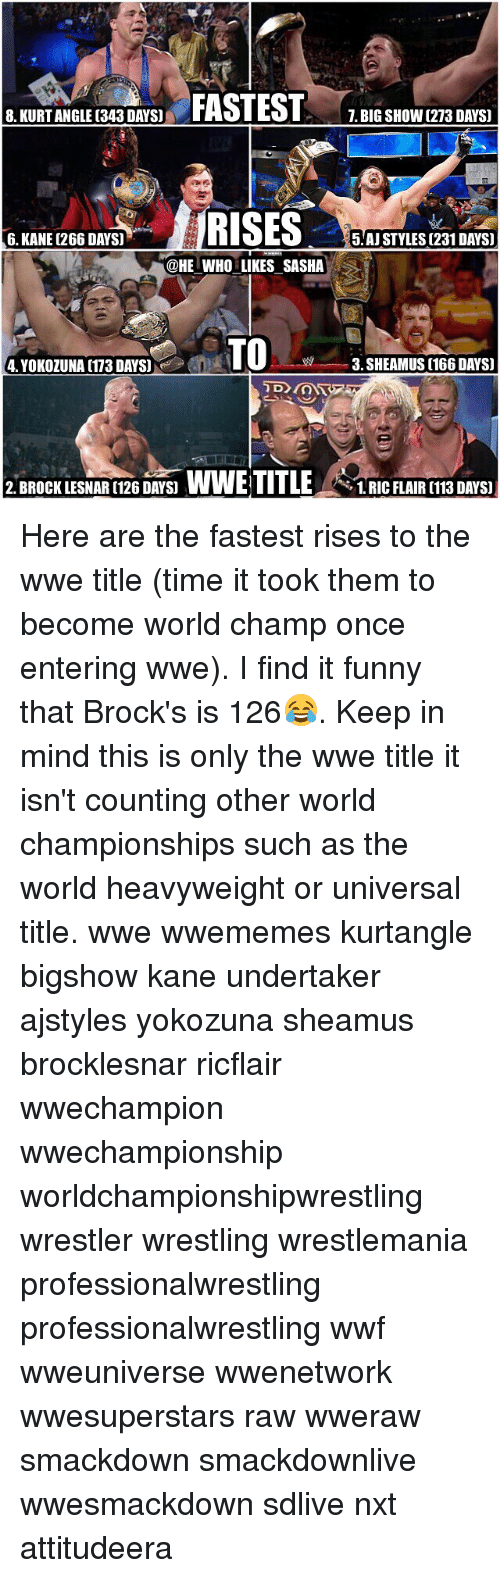 Ric Flair: FASTEST  8. KURTANGLE (343 DAYSU  RISES  6. KANE (266 DAYS)  5 AJ STYLES(231 DAYS)  @HE WHO LIKES SASHA  TO  3. SHEAMUS (166 DAYS)  2. BROCK LESNAR (126 DAYS WWE TITLE  t, 1.RIC FLAIR (113 DAYS) Here are the fastest rises to the wwe title (time it took them to become world champ once entering wwe). I find it funny that Brock's is 126😂. Keep in mind this is only the wwe title it isn't counting other world championships such as the world heavyweight or universal title. wwe wwememes kurtangle bigshow kane undertaker ajstyles yokozuna sheamus brocklesnar ricflair wwechampion wwechampionship worldchampionshipwrestling wrestler wrestling wrestlemania professionalwrestling professionalwrestling wwf wweuniverse wwenetwork wwesuperstars raw wweraw smackdown smackdownlive wwesmackdown sdlive nxt attitudeera